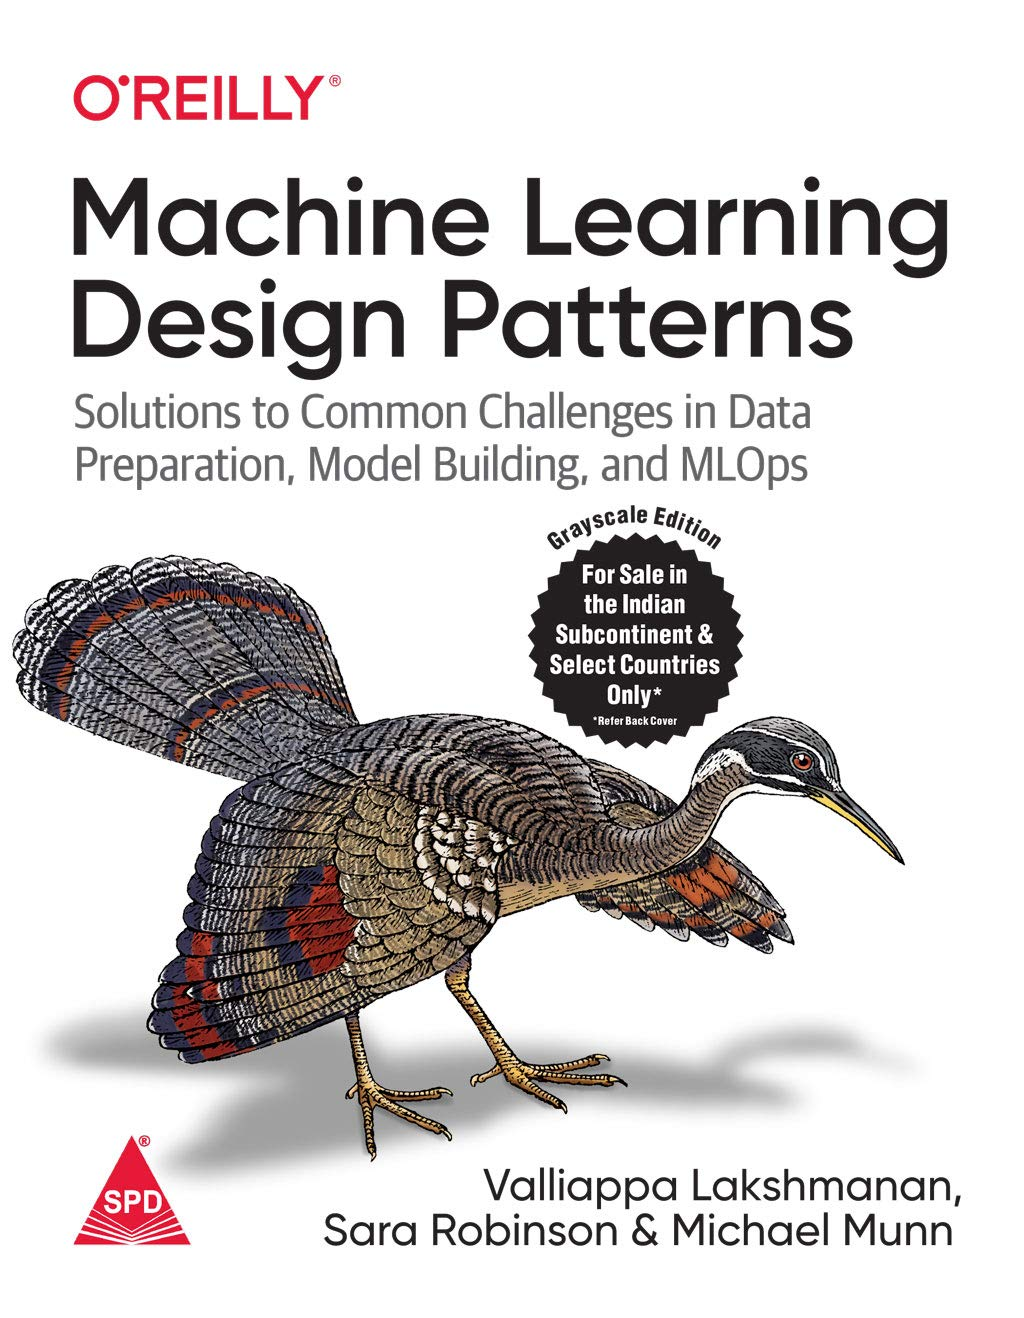 Machine Learning Design Patterns: Solutions to Common Challenges in Data Preparation, Model Building, and MLOps (Grayscale Indian Edition)